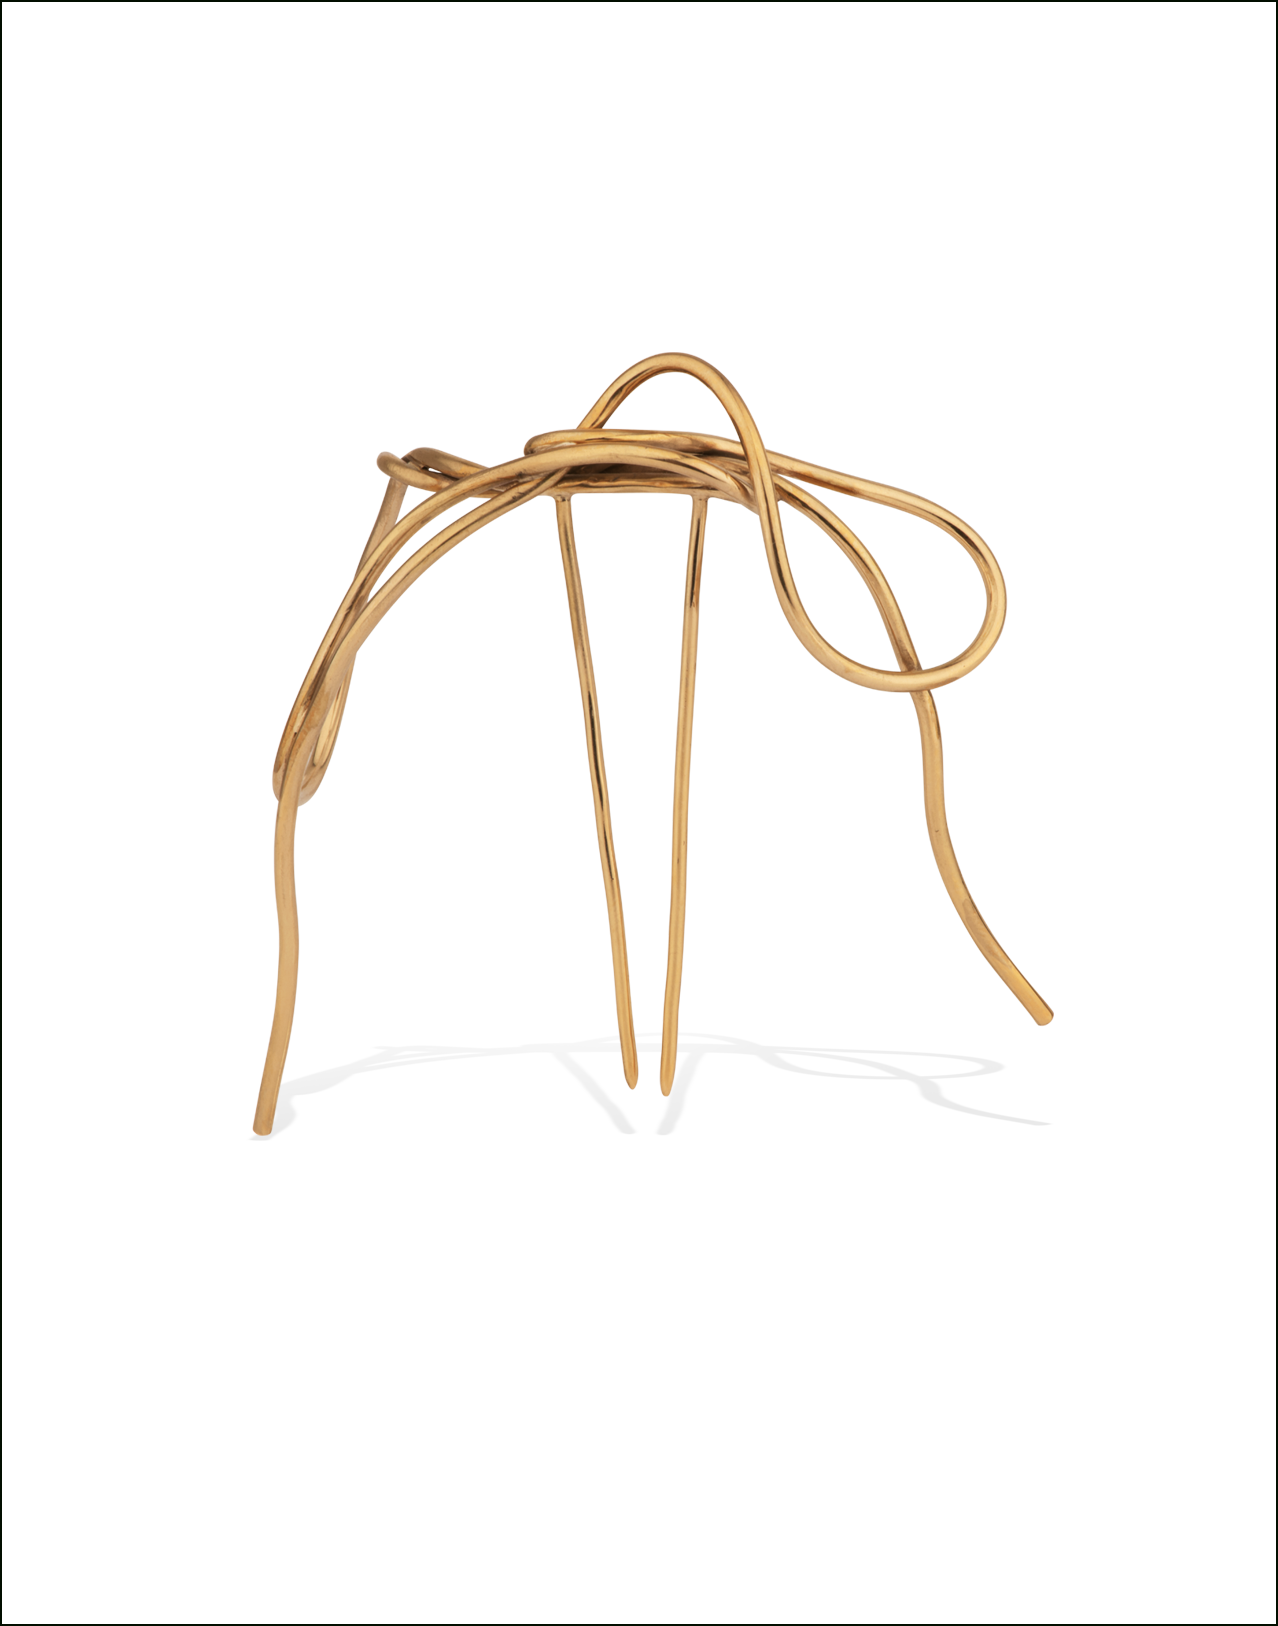 Completedworks-Hair-Pin-Gold-Vermeil-The-March-of-Progress-2-1.png